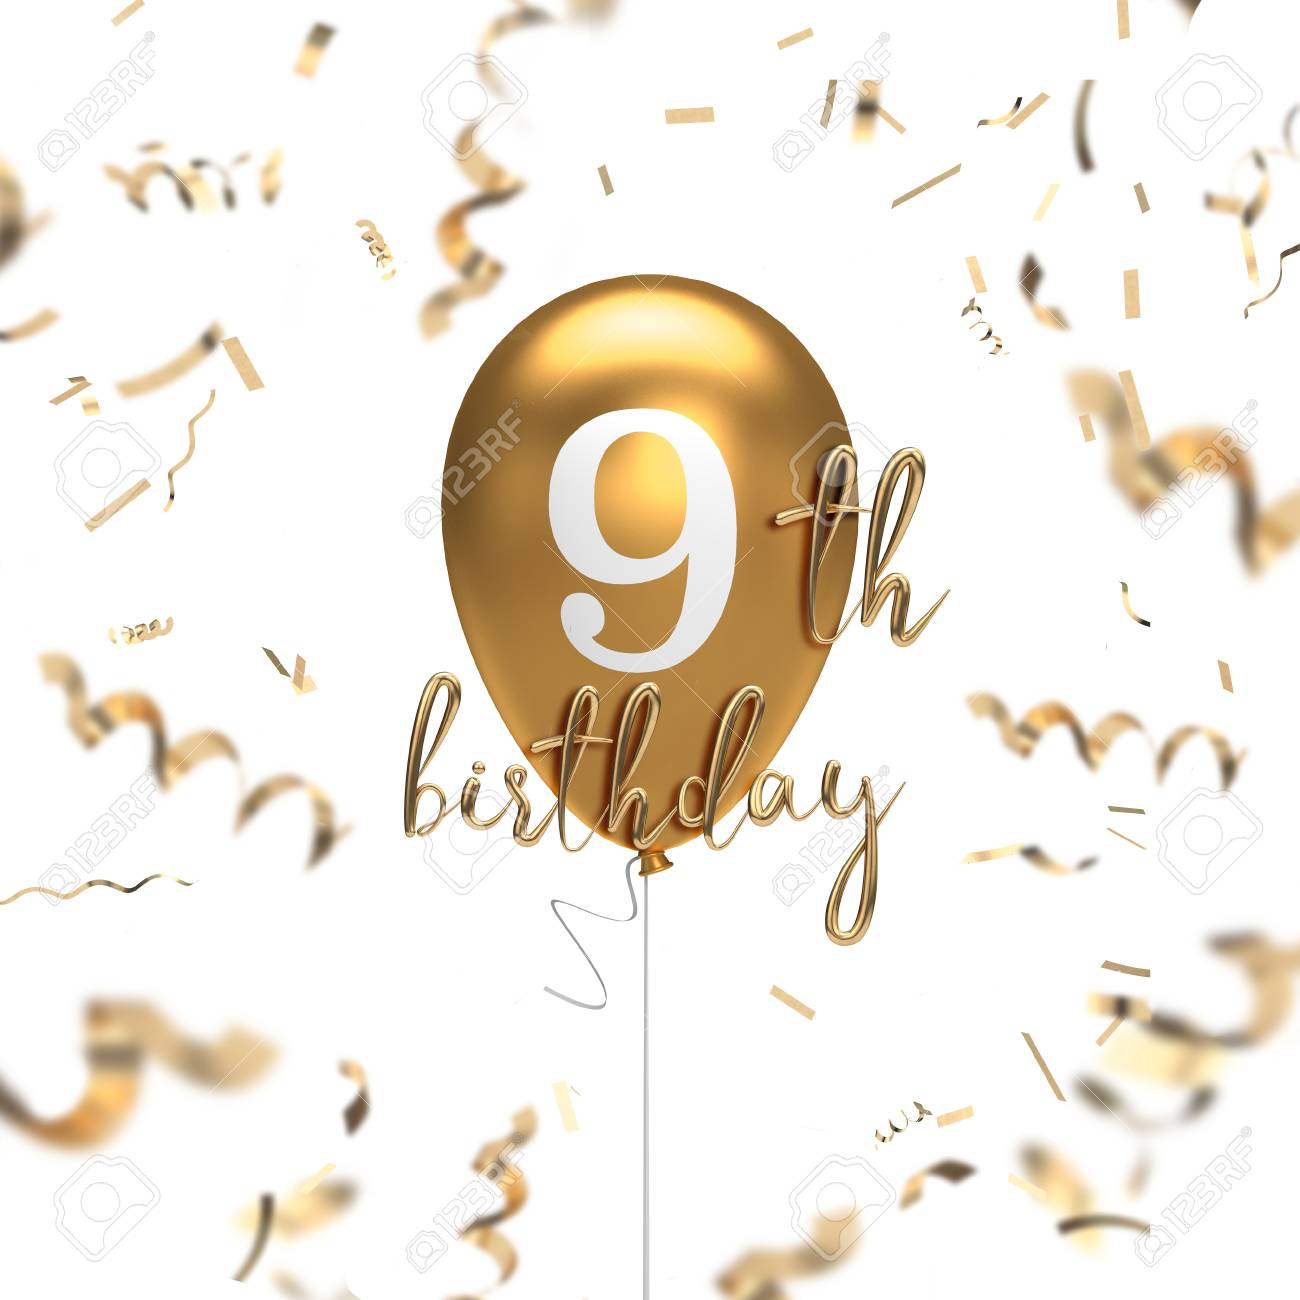 Happy 9th Birthday Gold Balloon Greeting Background 3d Rendering Stock Photo Picture And Royalty Free Image Image 105639612